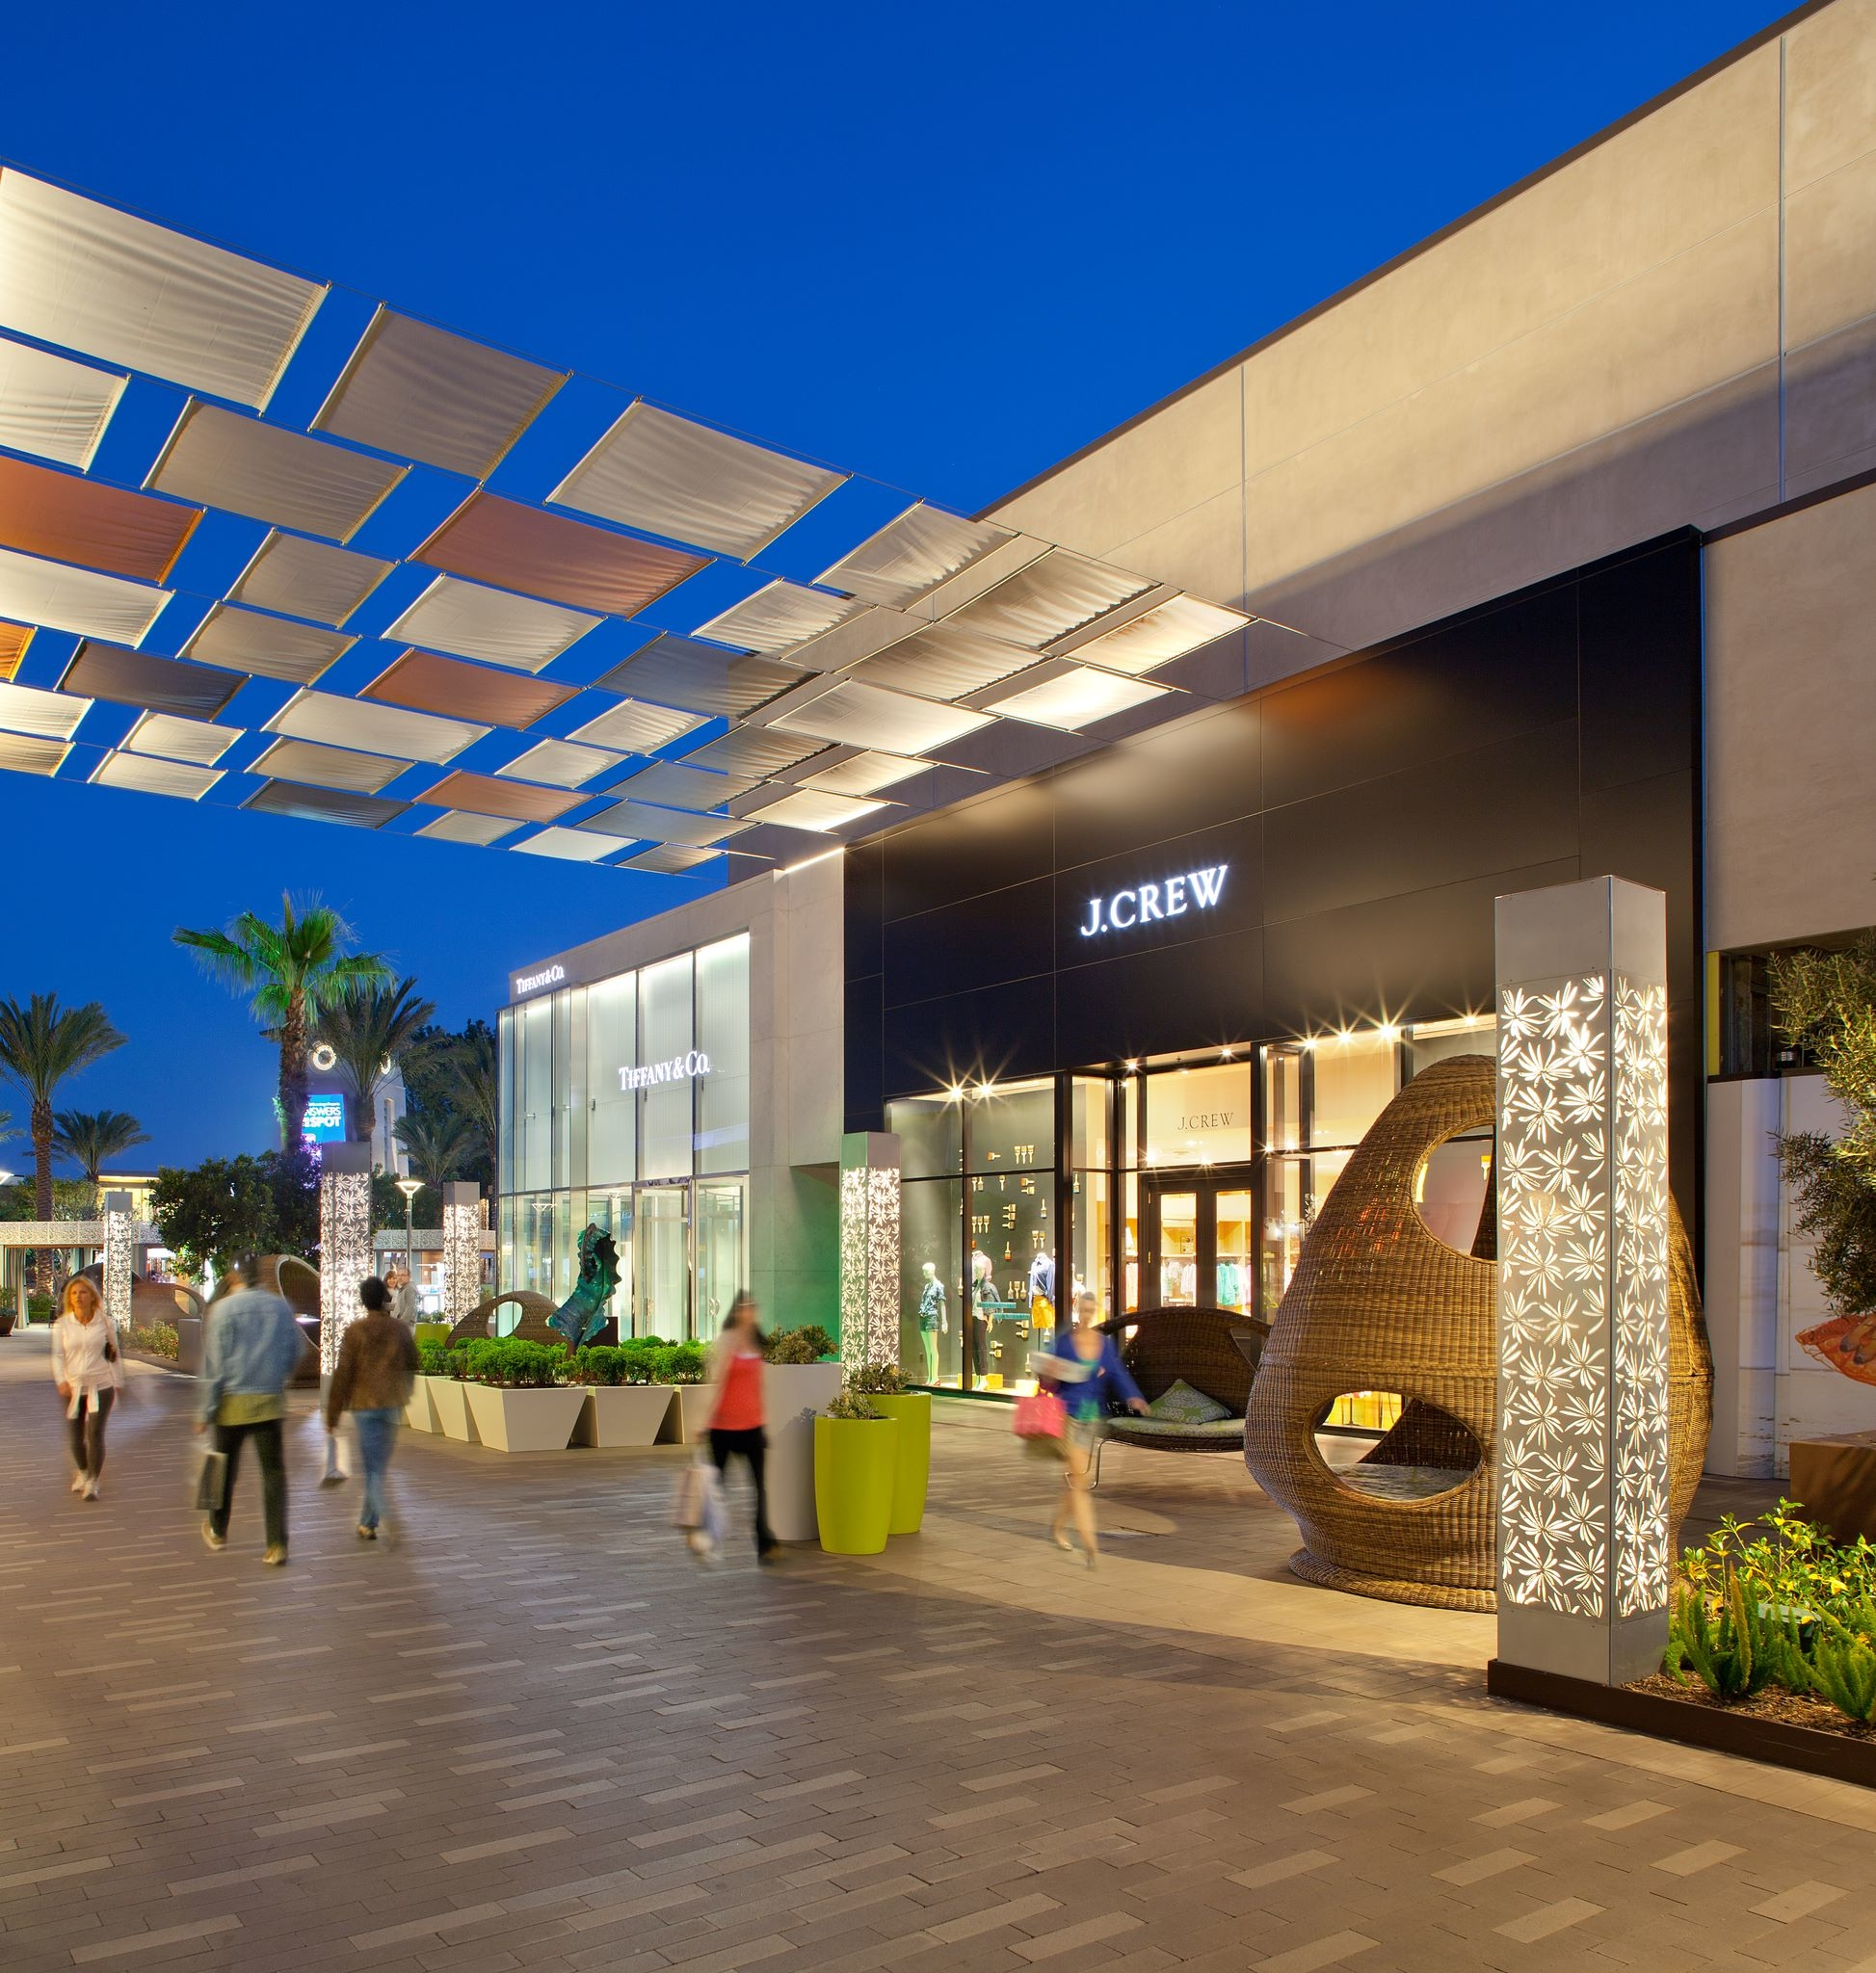 View mall directory info for Westfield UTC in San Diego, CA – including stores, hours of operation, phone numbers, and more.